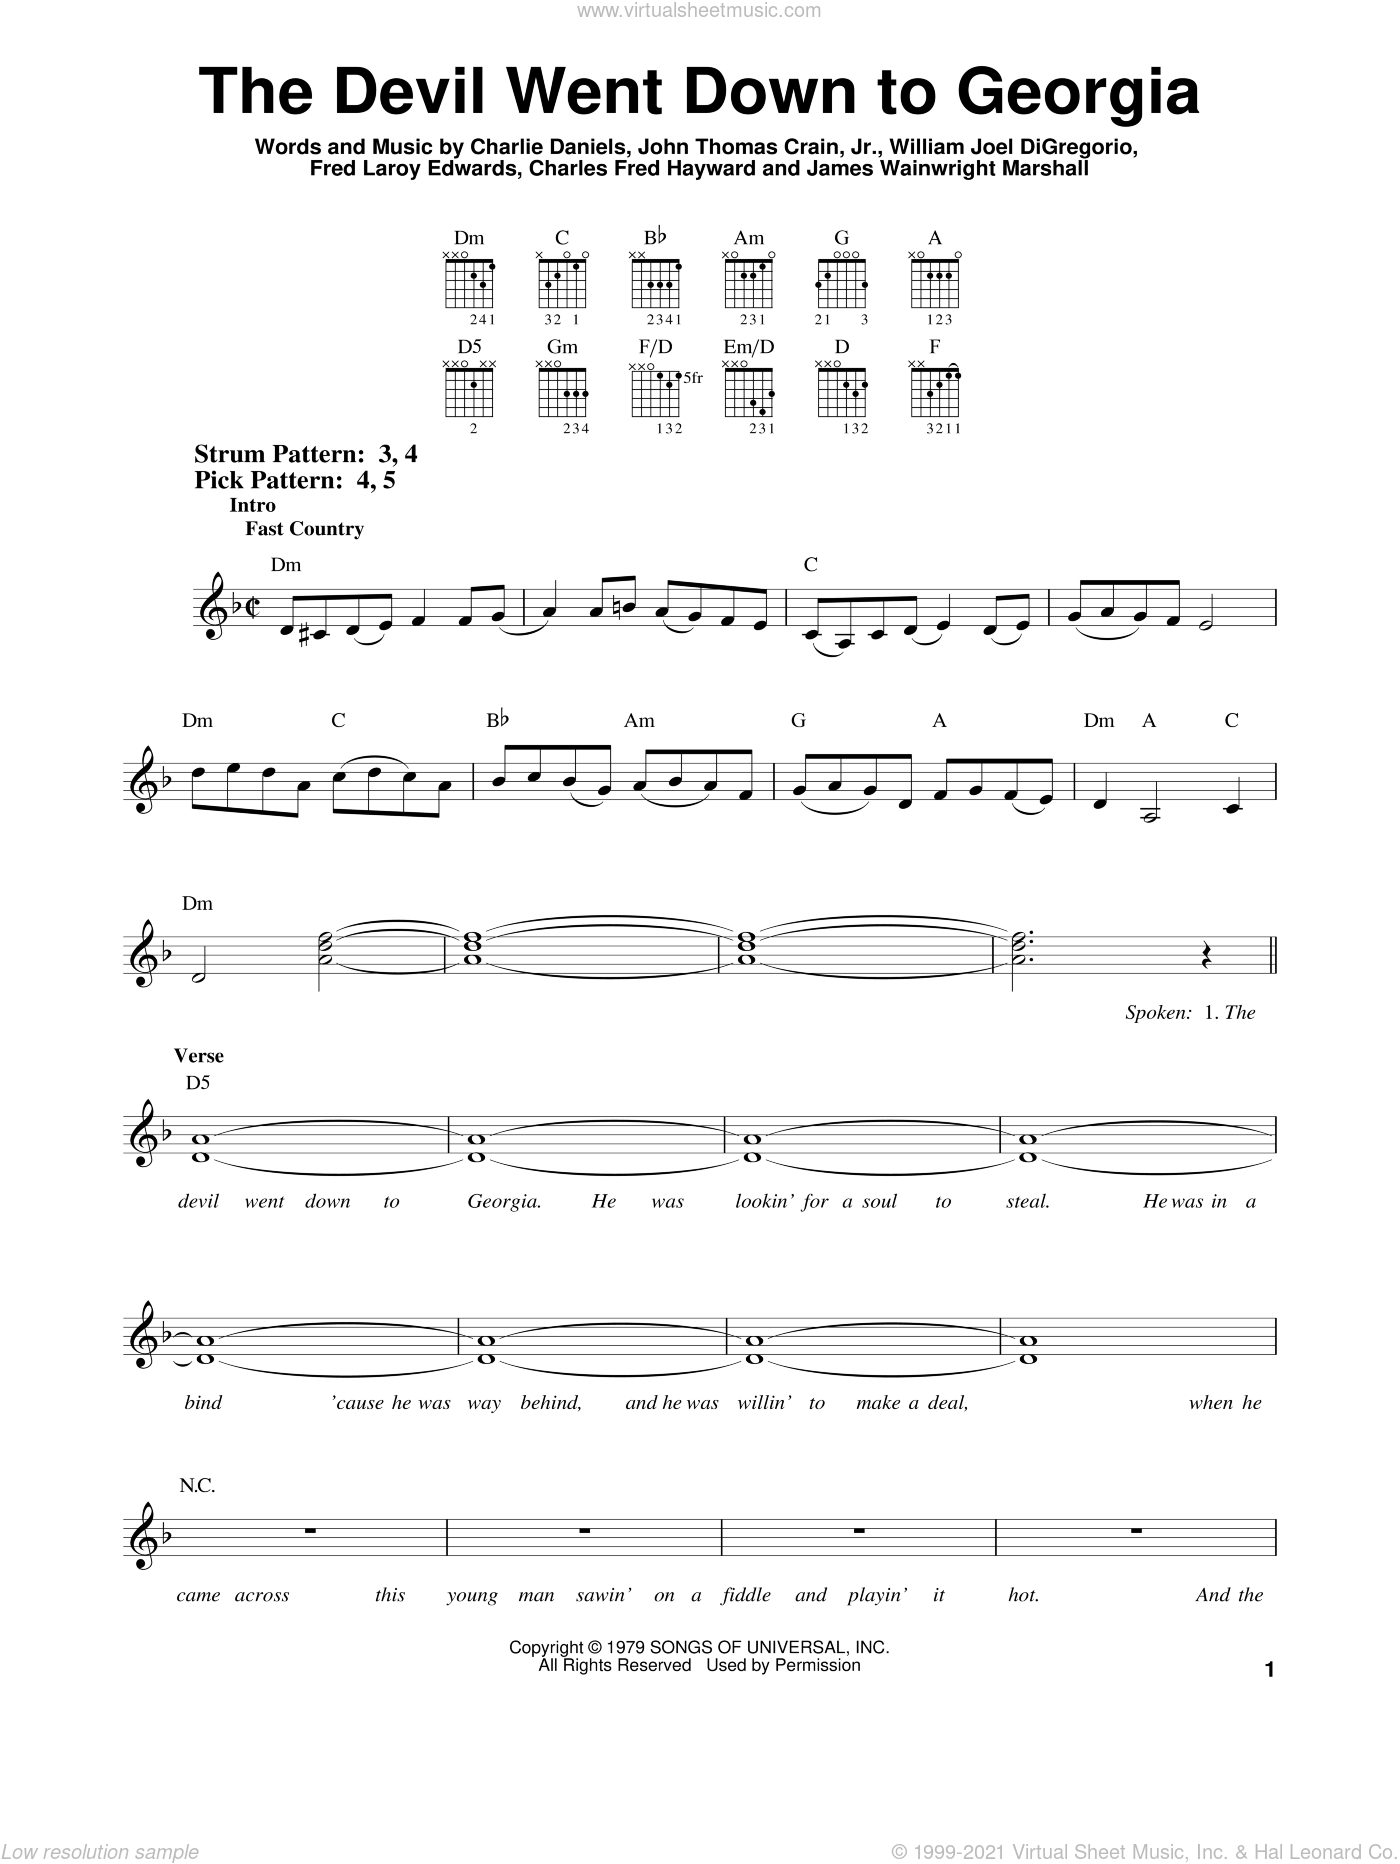 The Devil Went Down To Georgia sheet music for guitar solo (chords) by William Joel DiGregorio